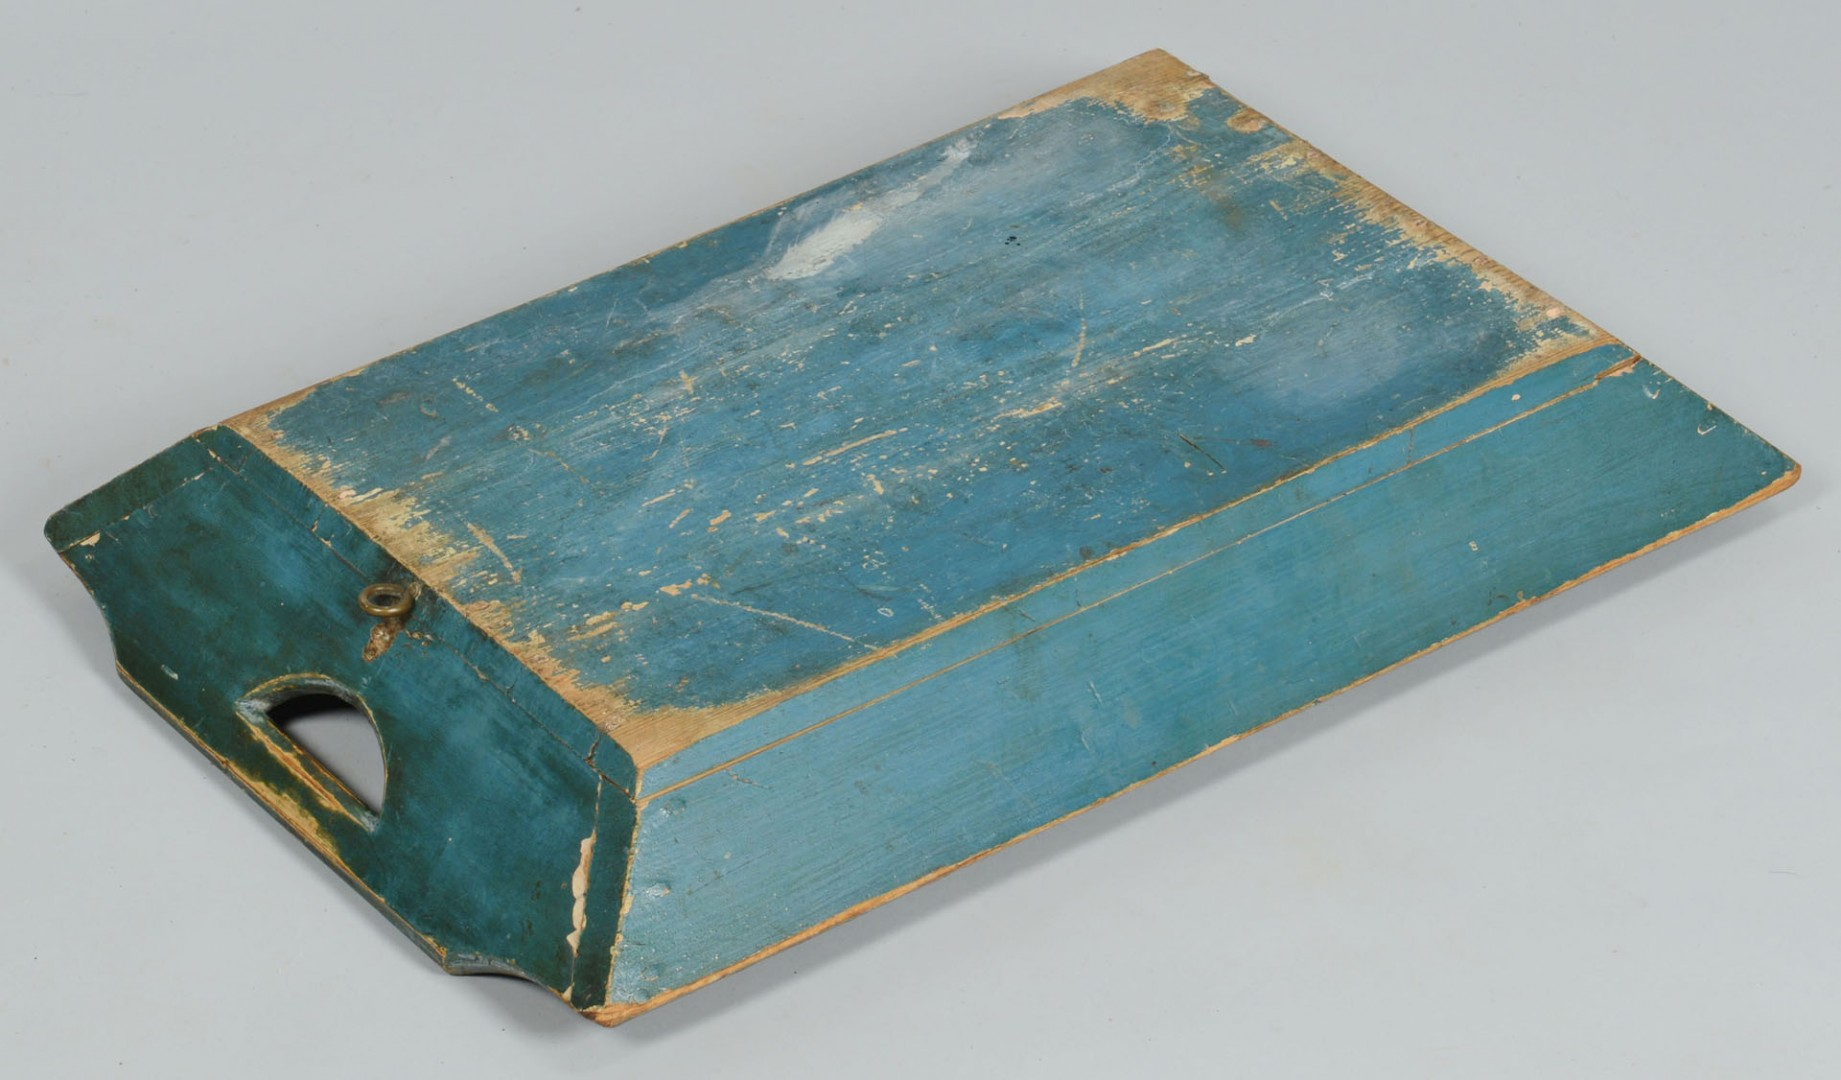 Lot 328: Group of 19th c. painted boxes, shelf, tray, 4 pcs